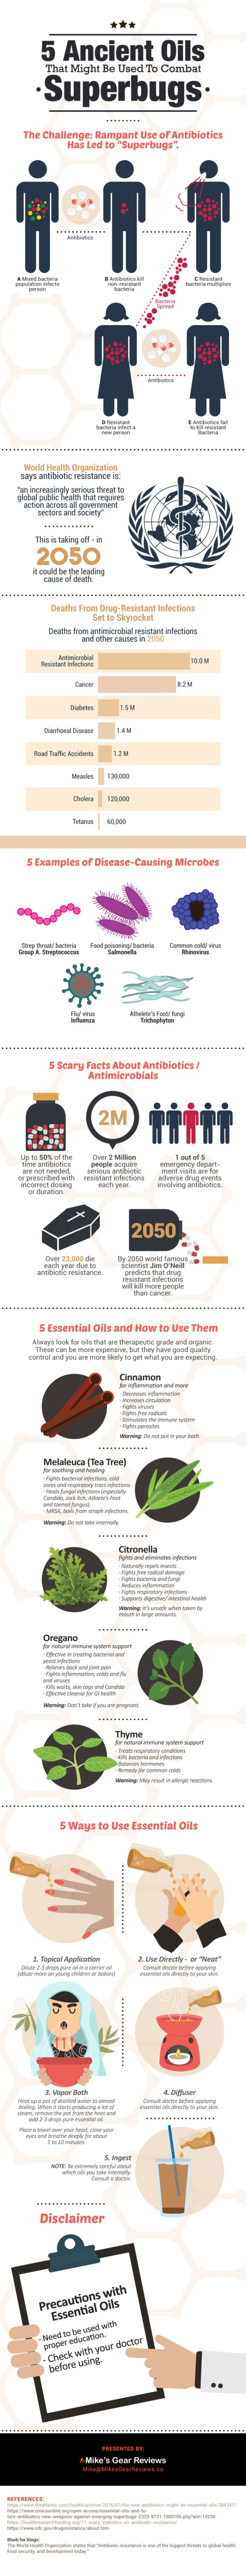 Oils and Superbugs IG.jpg